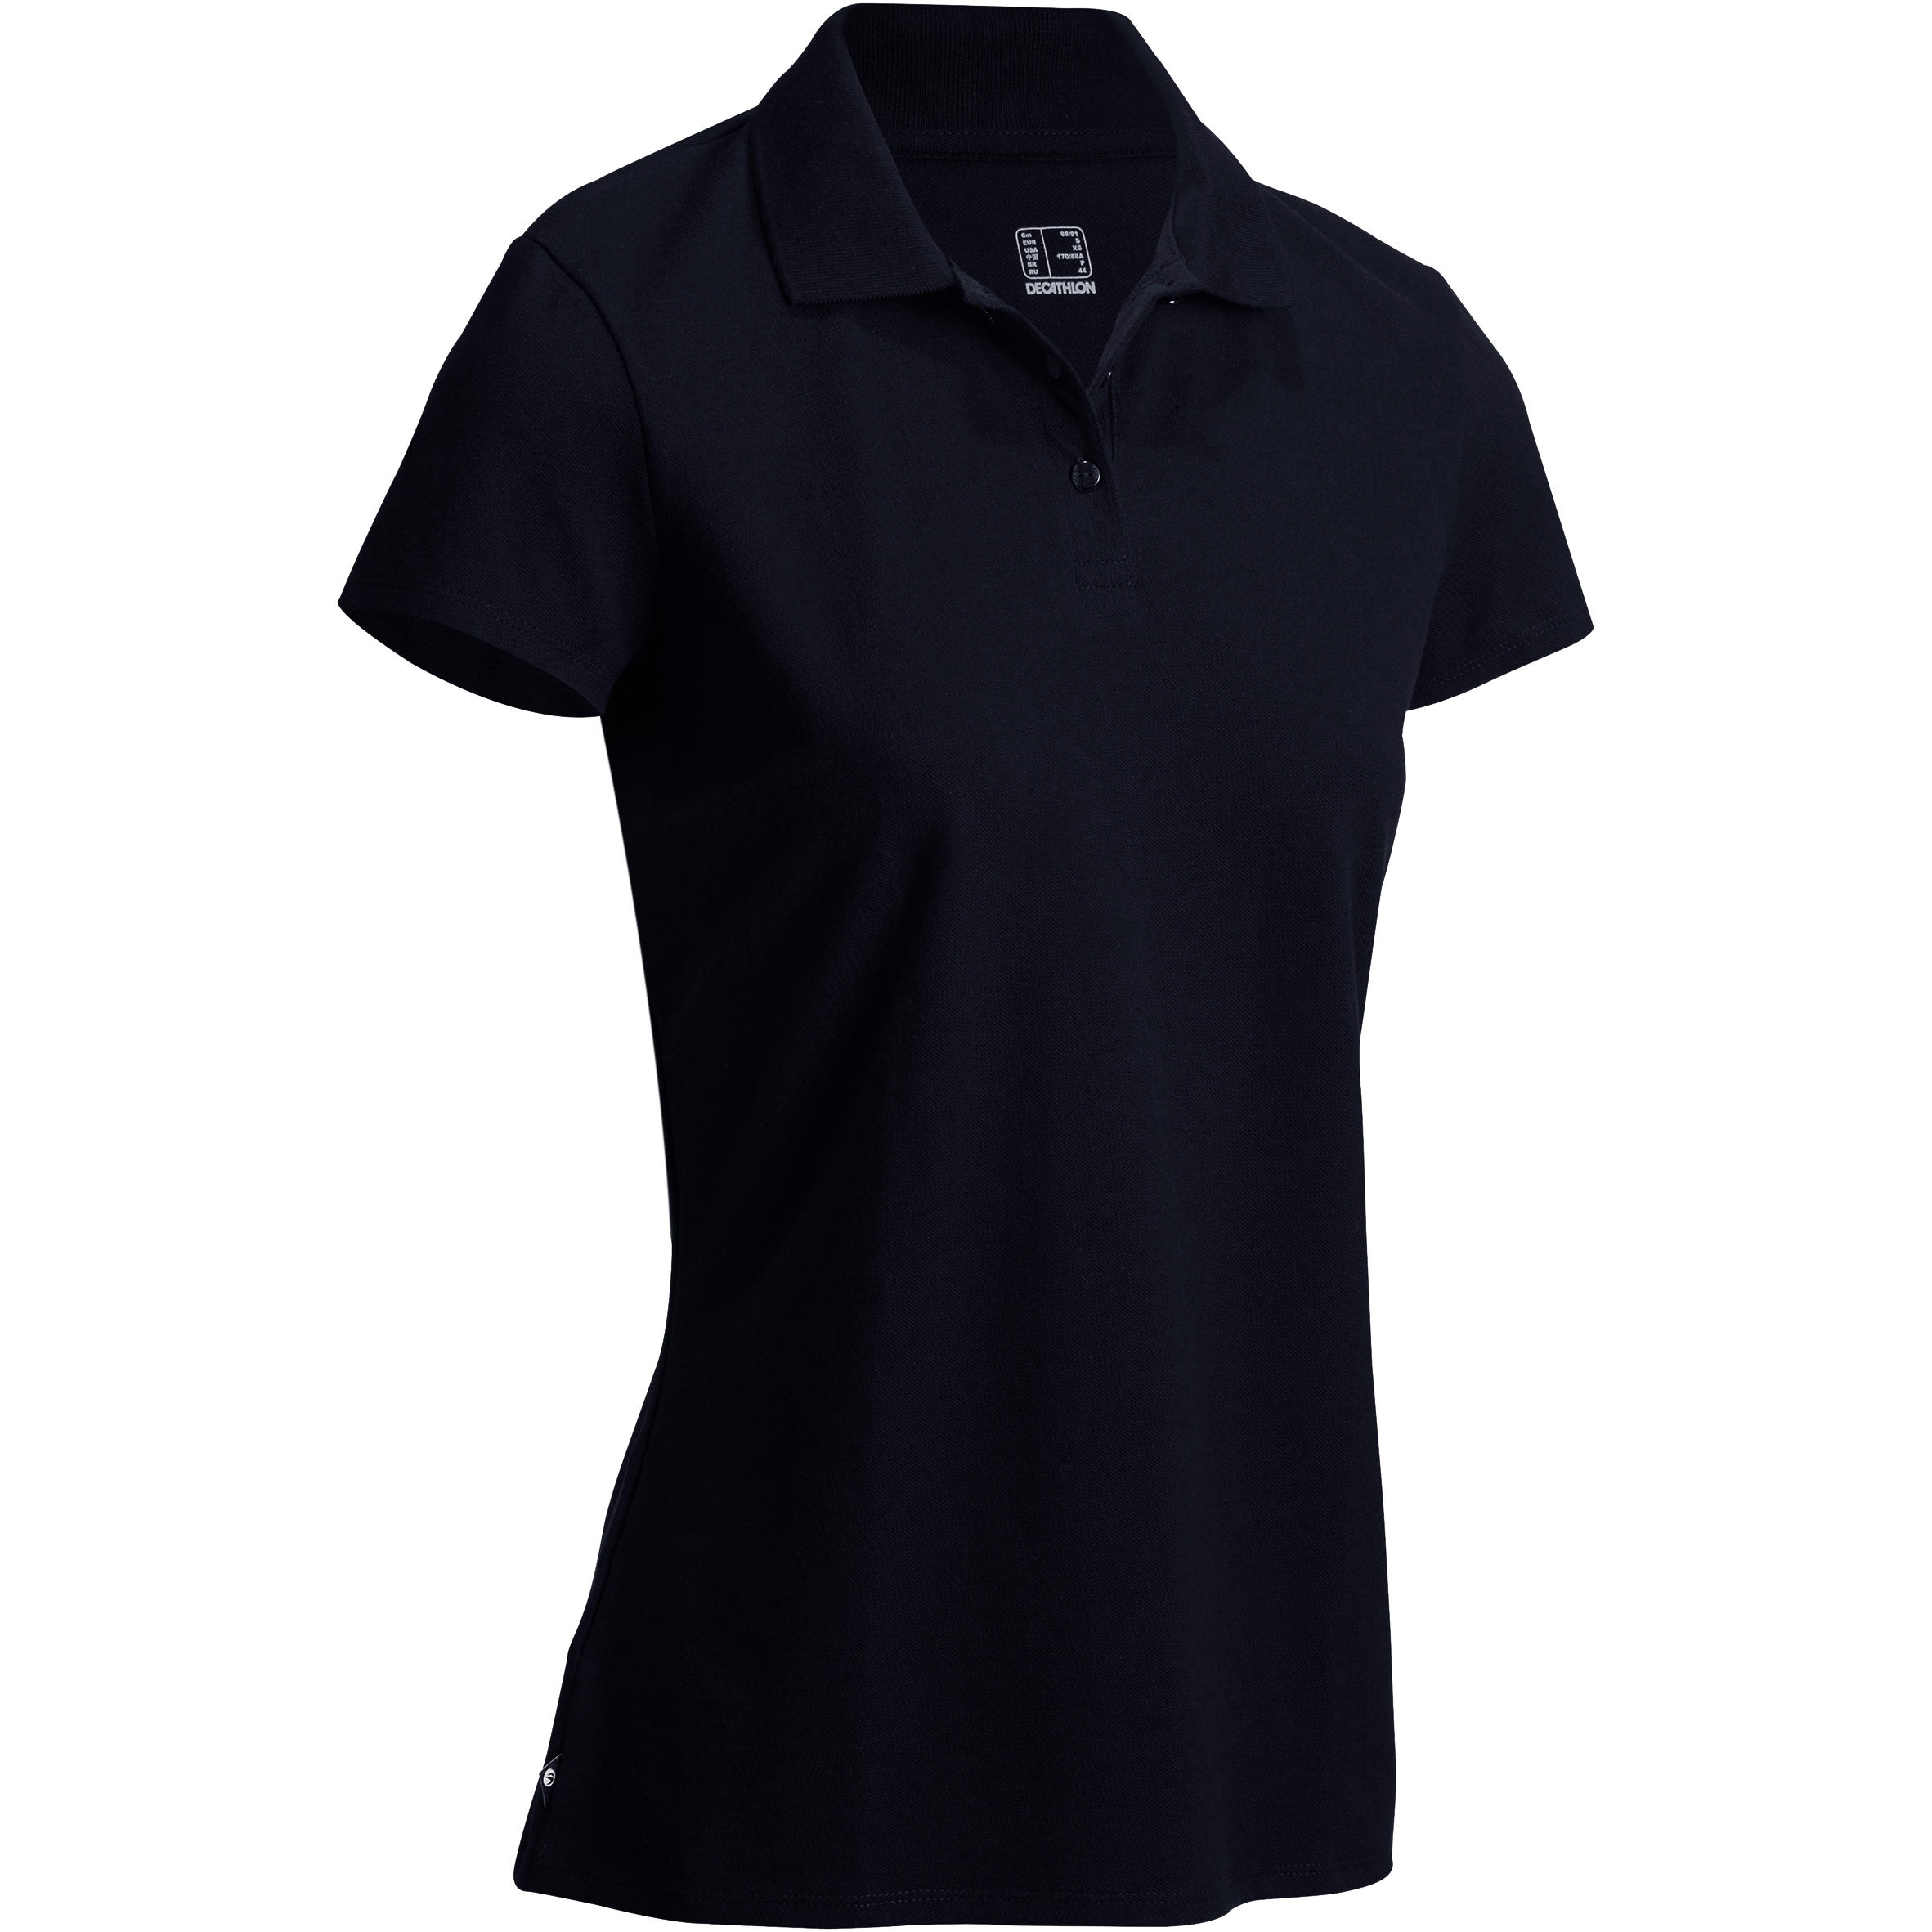 CAMISETA TIPO POLO GOLF MUJER FIRST'IN Negro